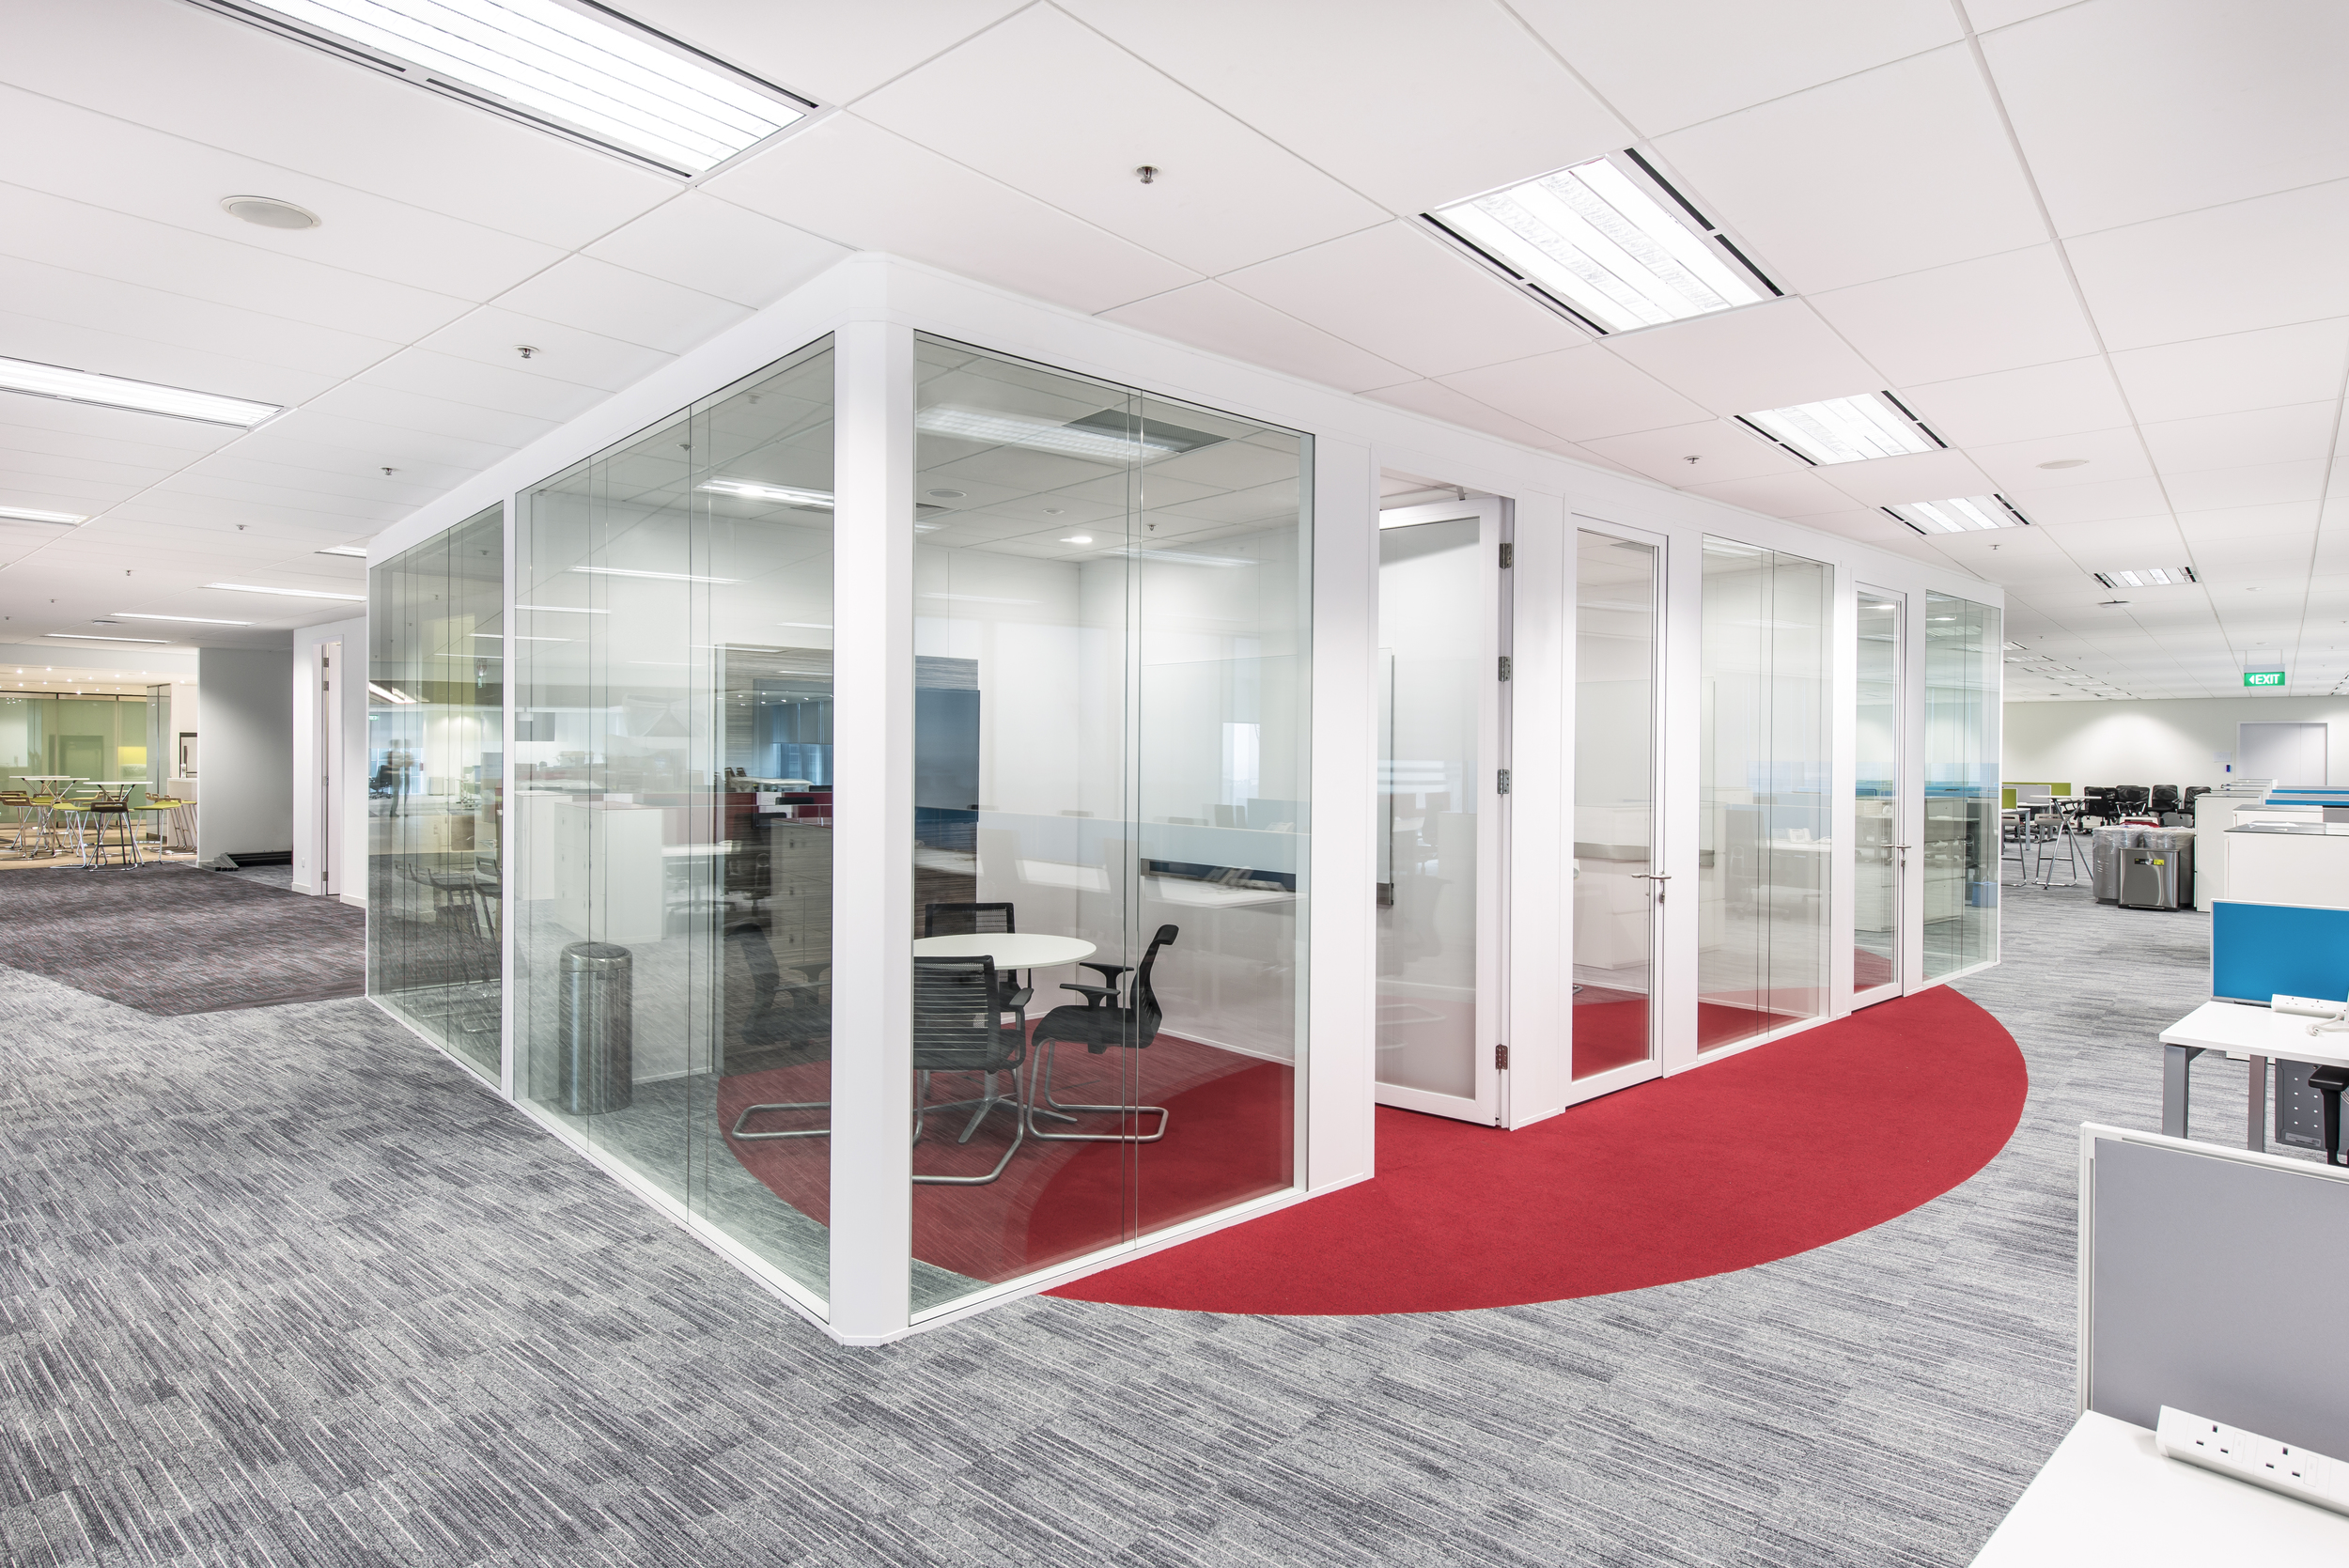 Clestra partitions at Vodafone (Singapore)